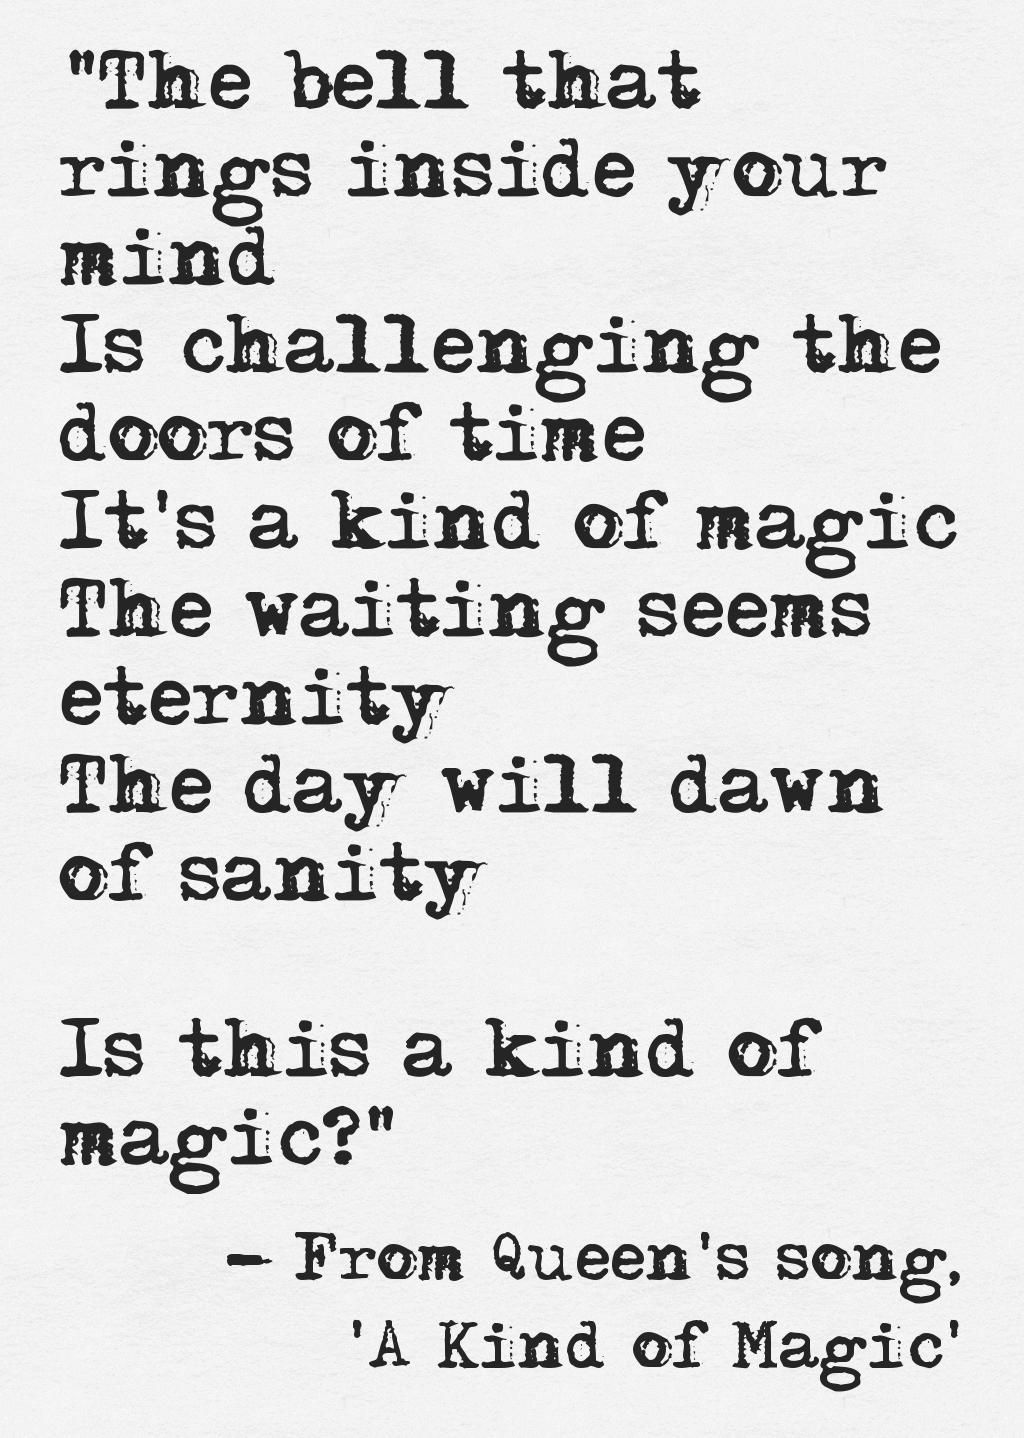 Get More From Pinterest Queen Lyrics A Kind Of Magic Meaningful Lyrics